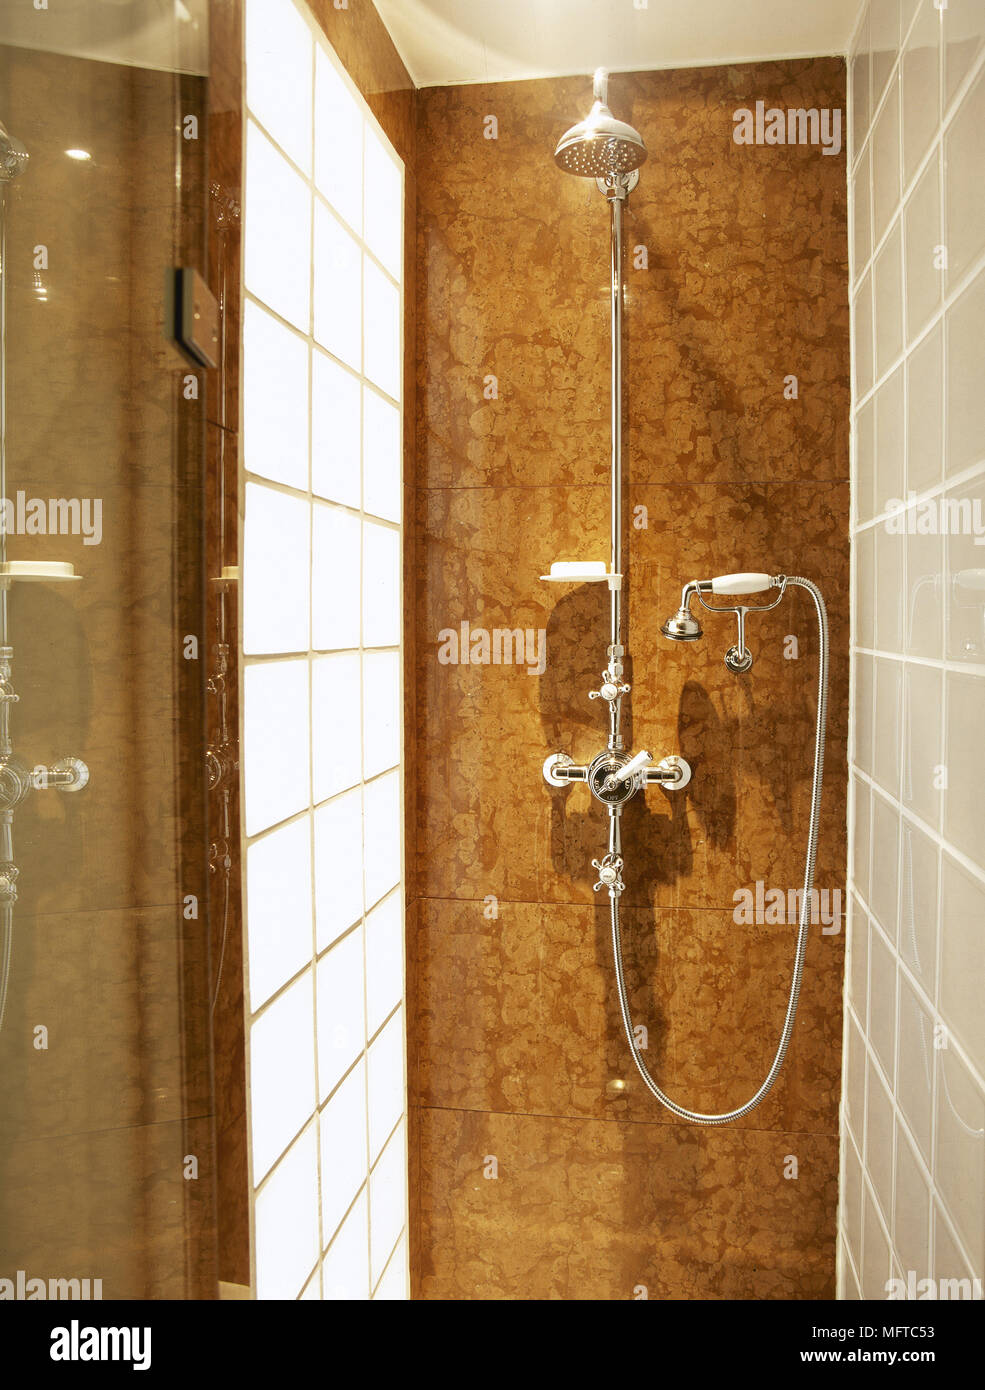 . Modern bathroom detail of a shower stall with tile walls and a glass